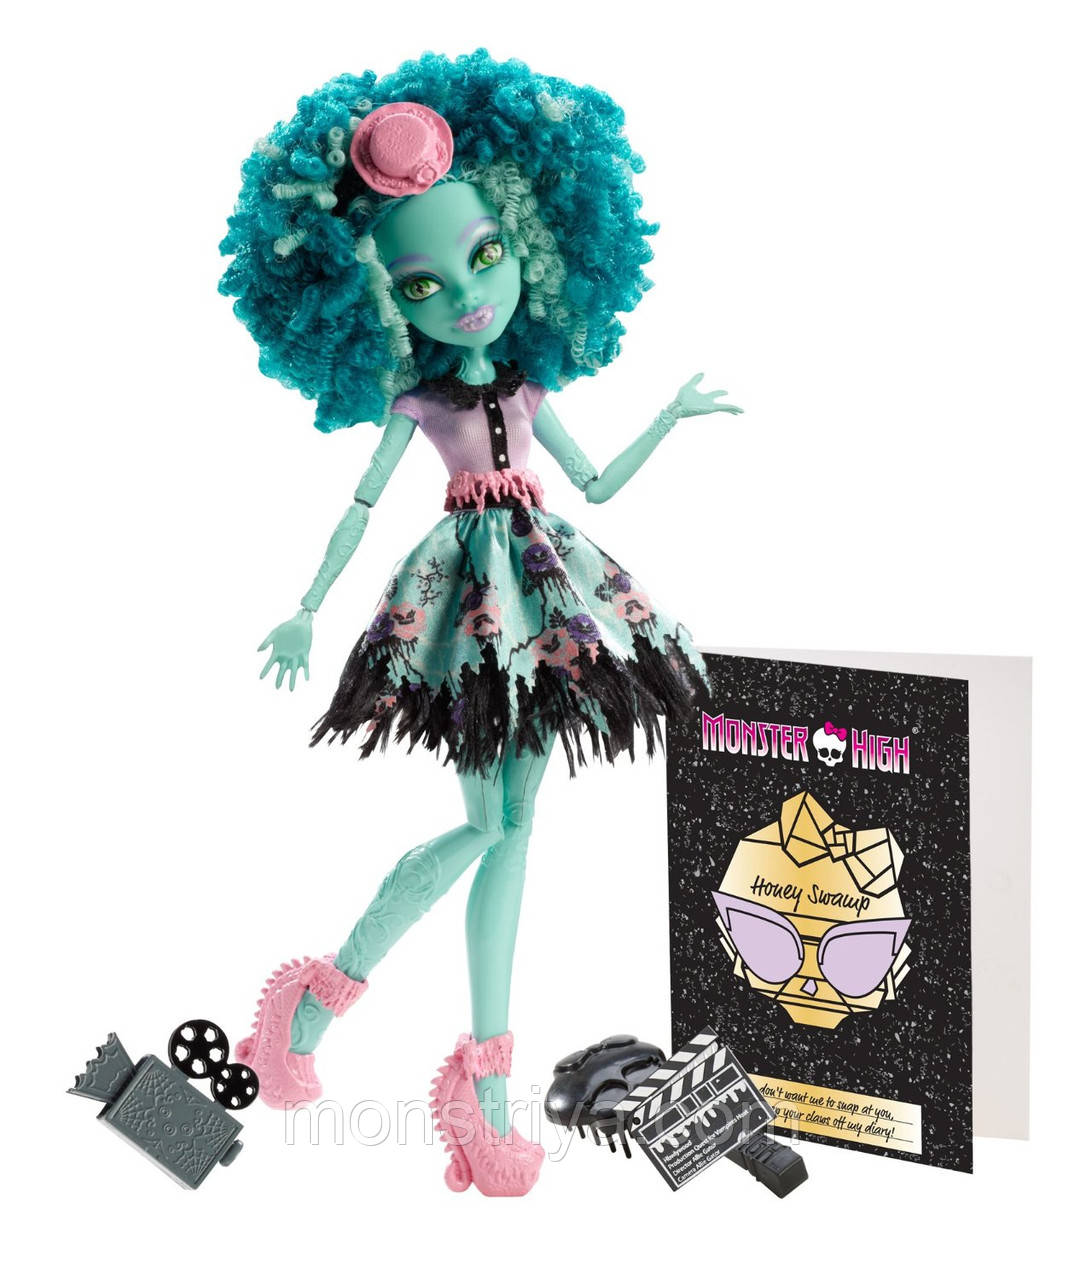 Кукла Хани Свомп, серия Страх Камера Мотор Monster High